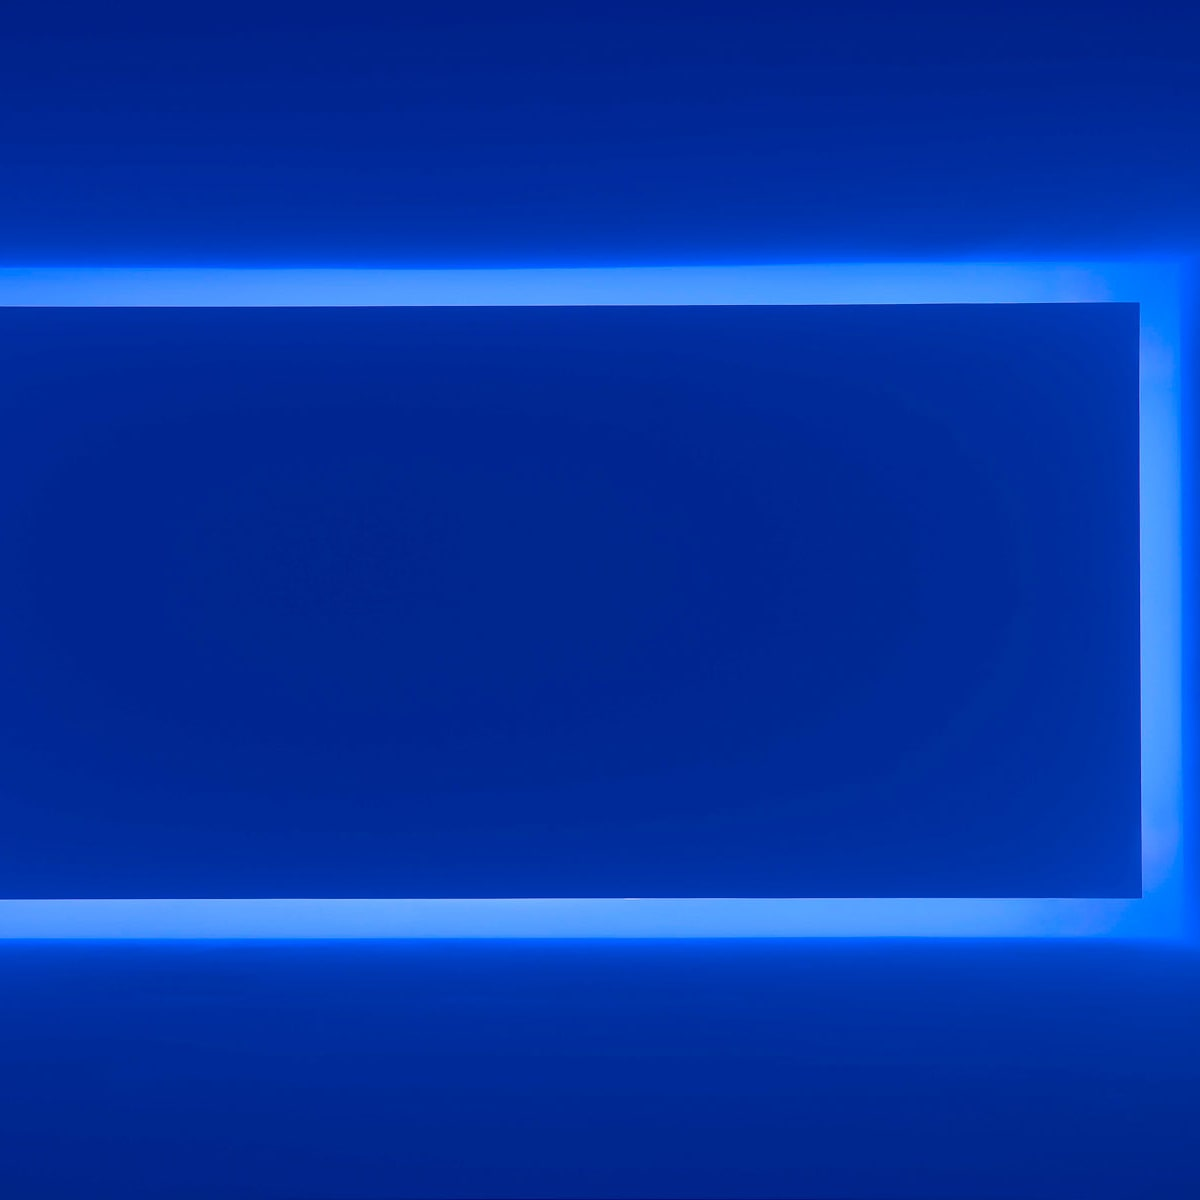 MFAH James Turrell The Light Inside June 2013 Rondo Blue